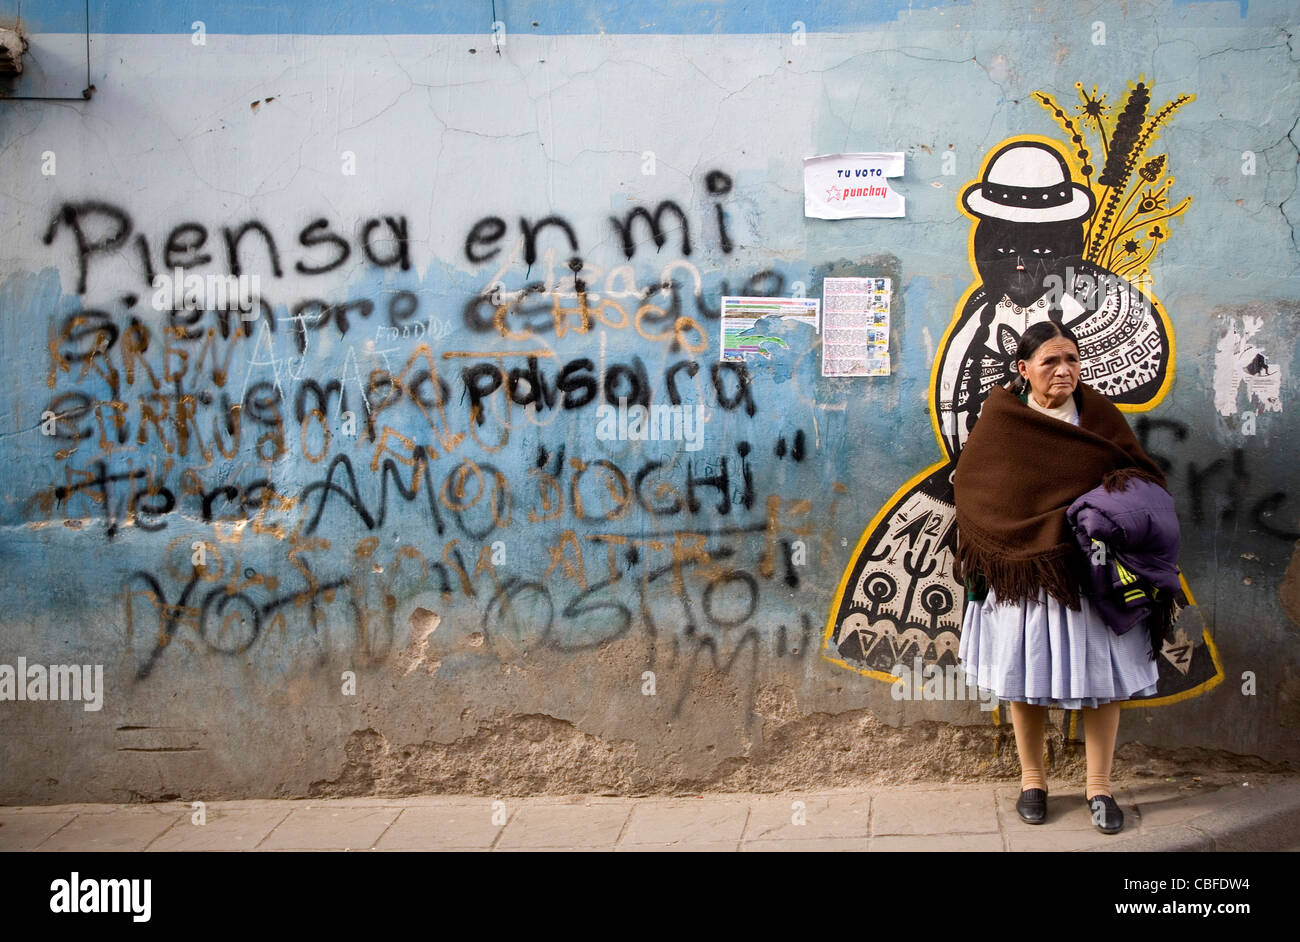 Bolivian woman standing in front of a wall mural in Potosi' Bolivia - Stock Image